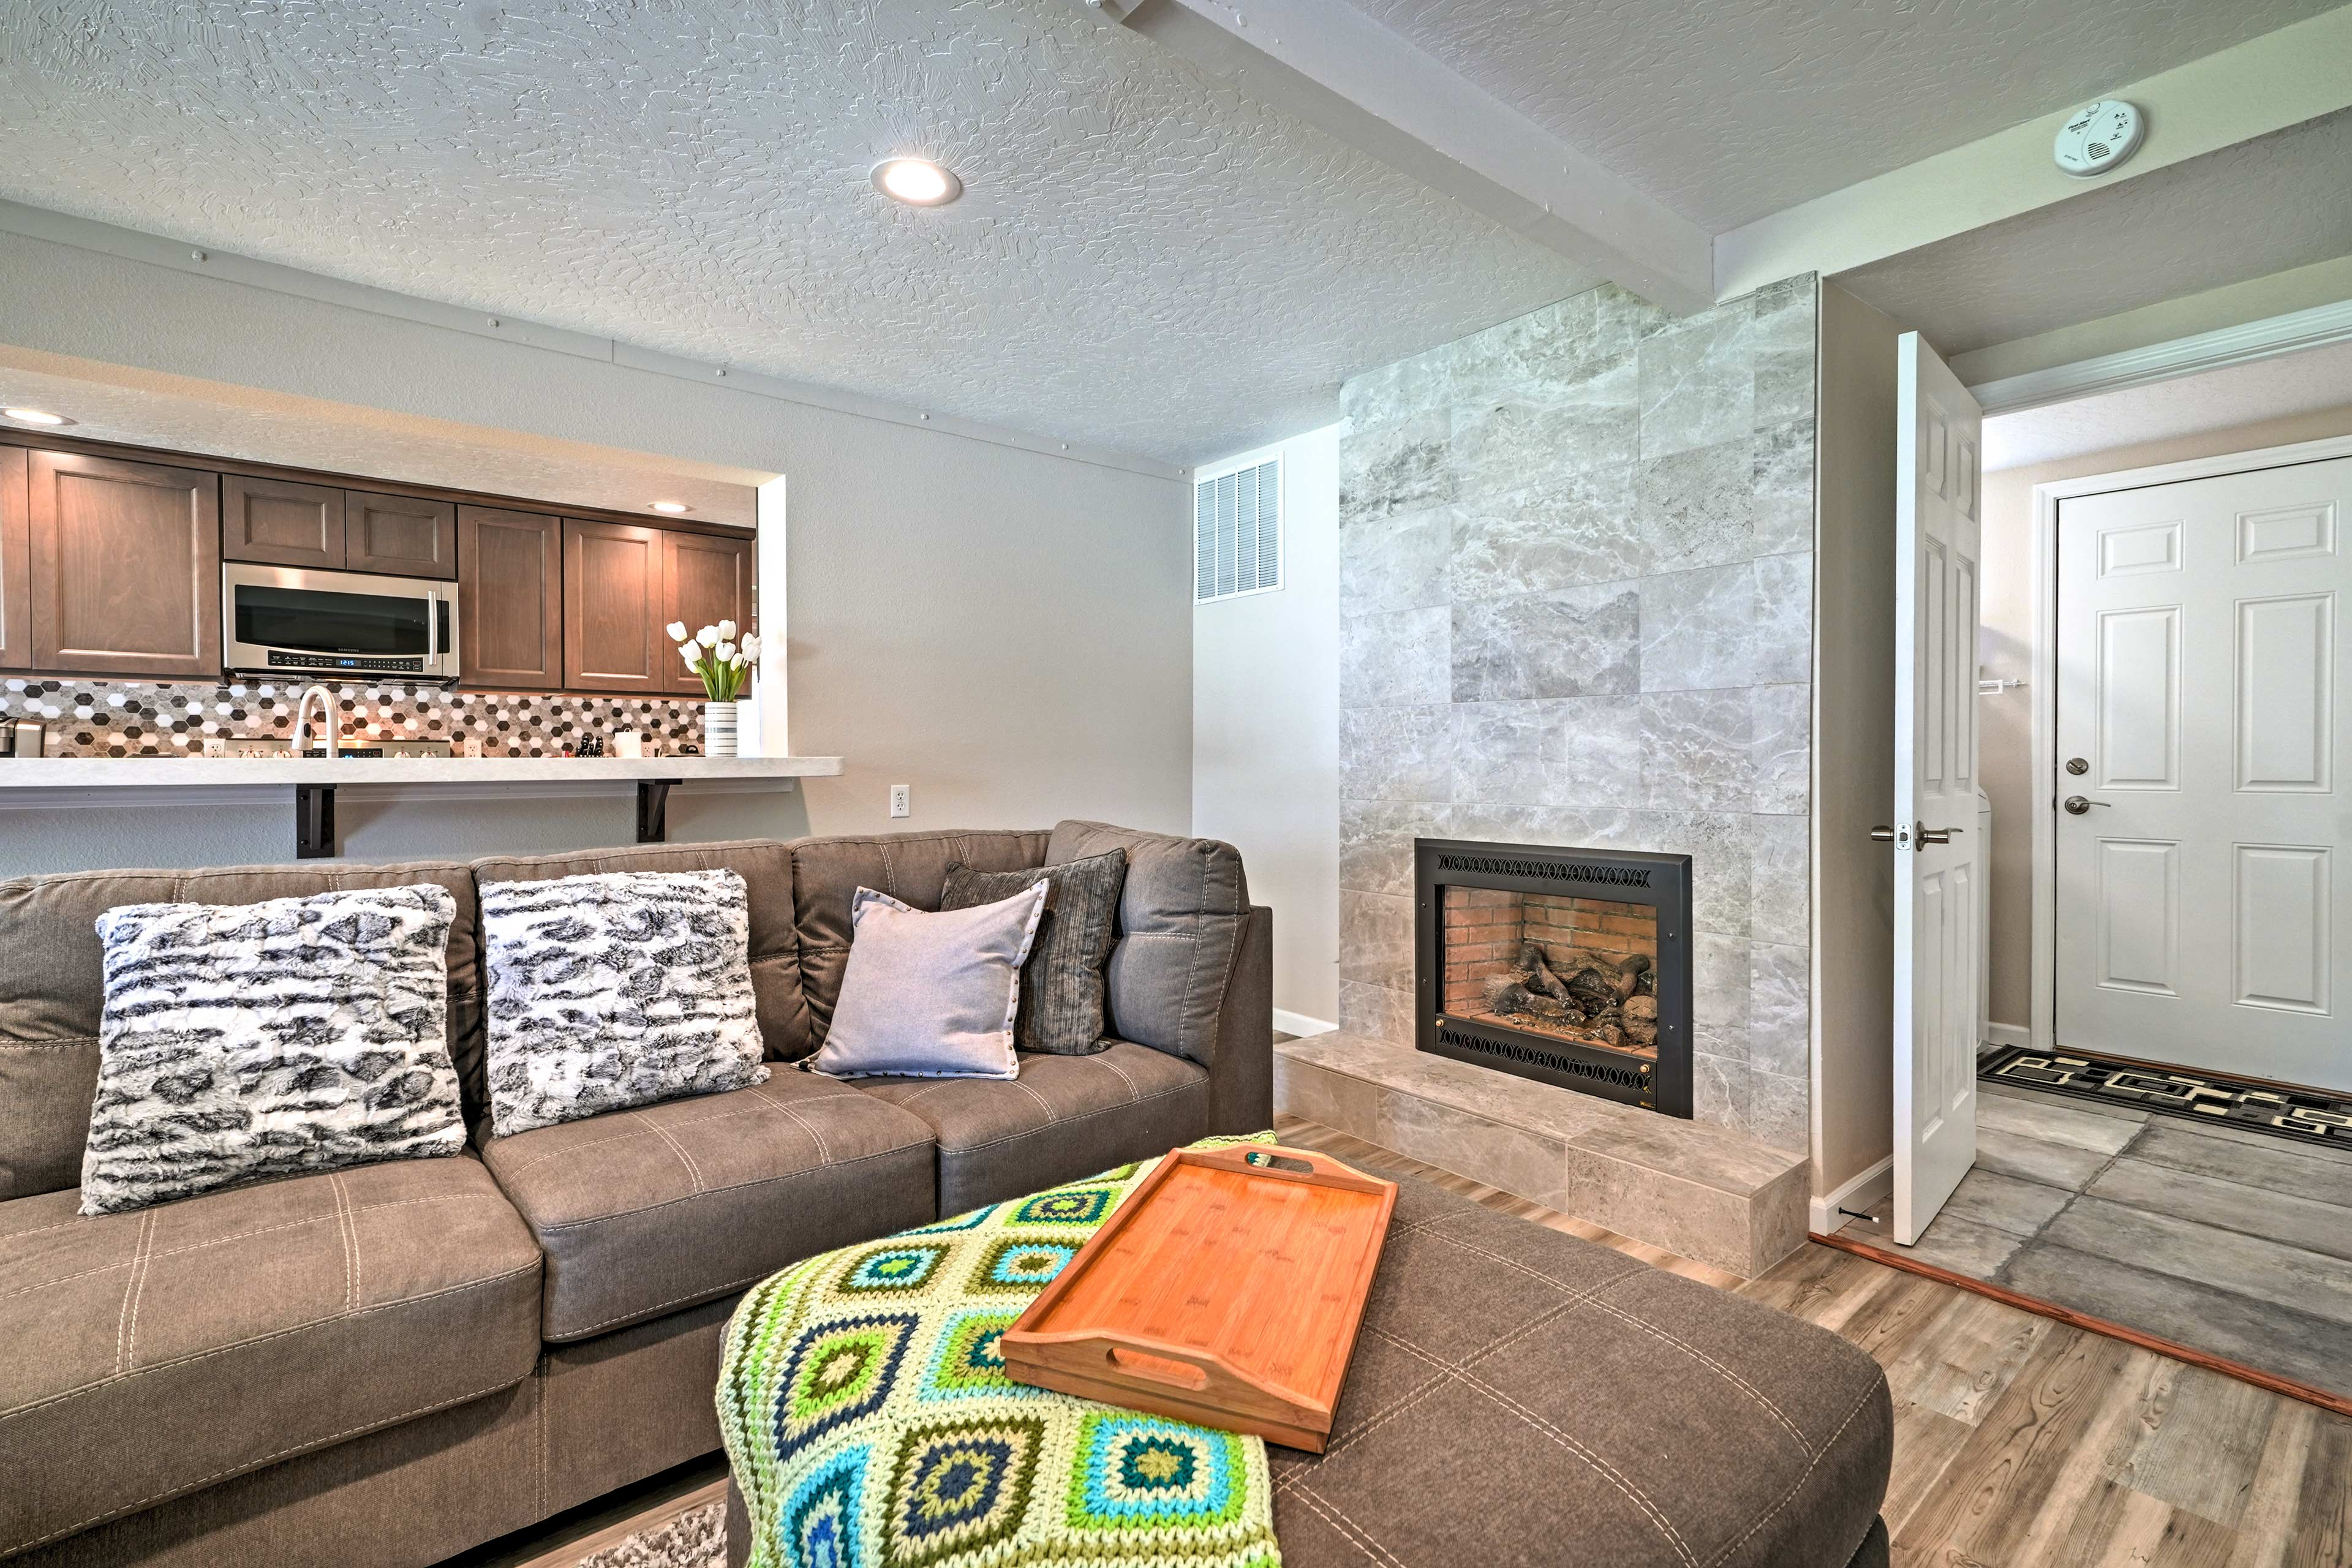 Cozy up by the fireplace on the large sectional.